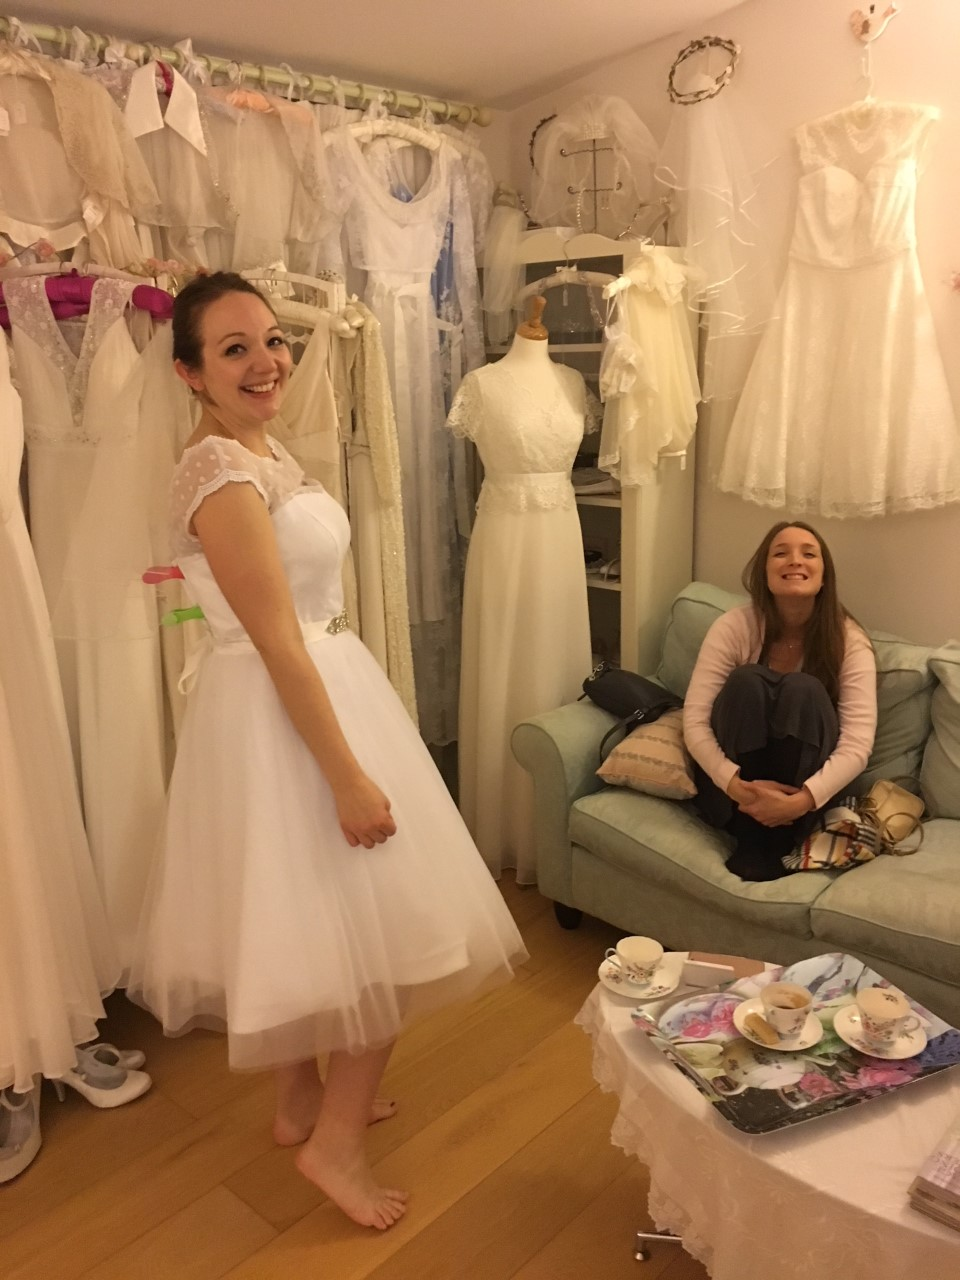 we sell vintage style wedding dresses from our bridal shop in Brighton.